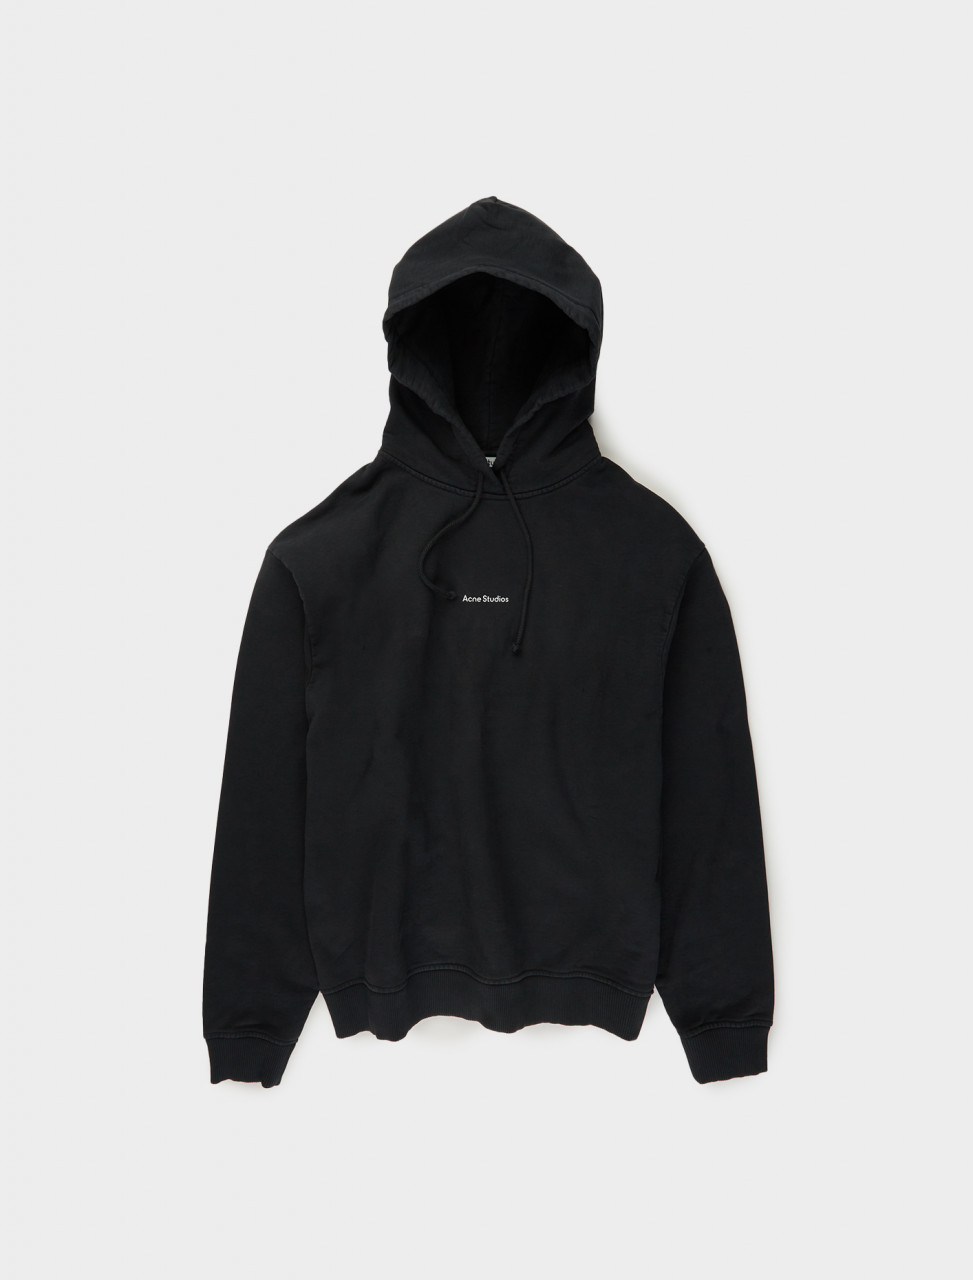 110-AI0070-900 ACNE STUDIOS LOGO PRINTED HOODED SWEATSHIRT IN BLACK